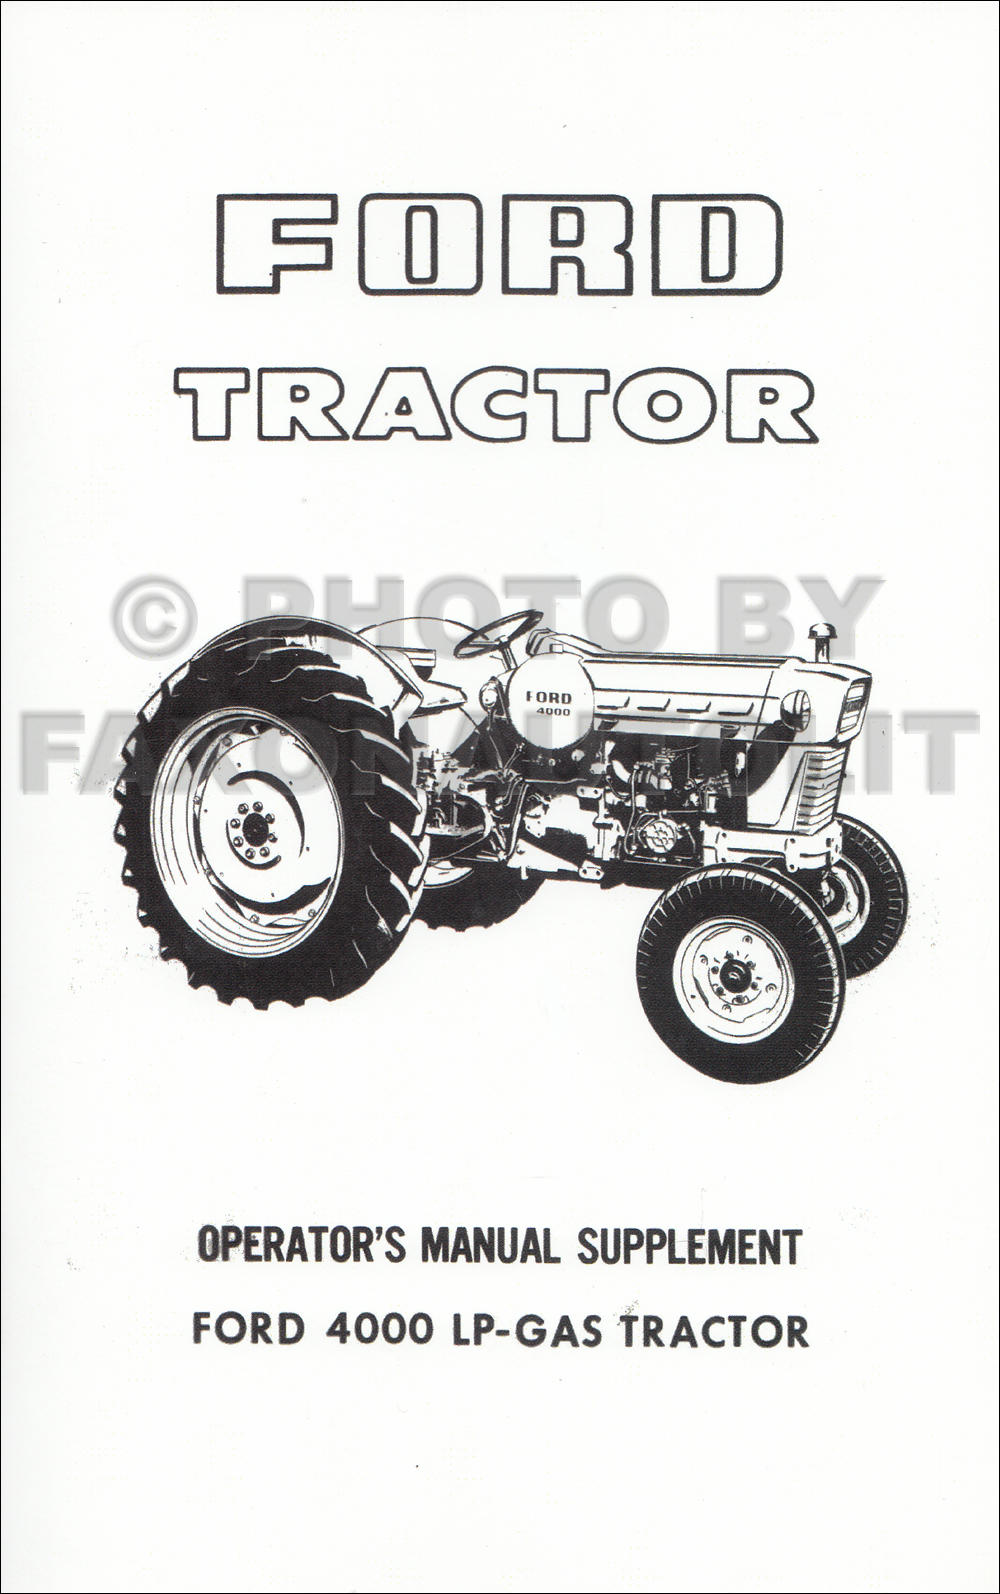 1965-1975 Ford LP-Gas 4000 Tractor Owner's Manual Supplement Reprint